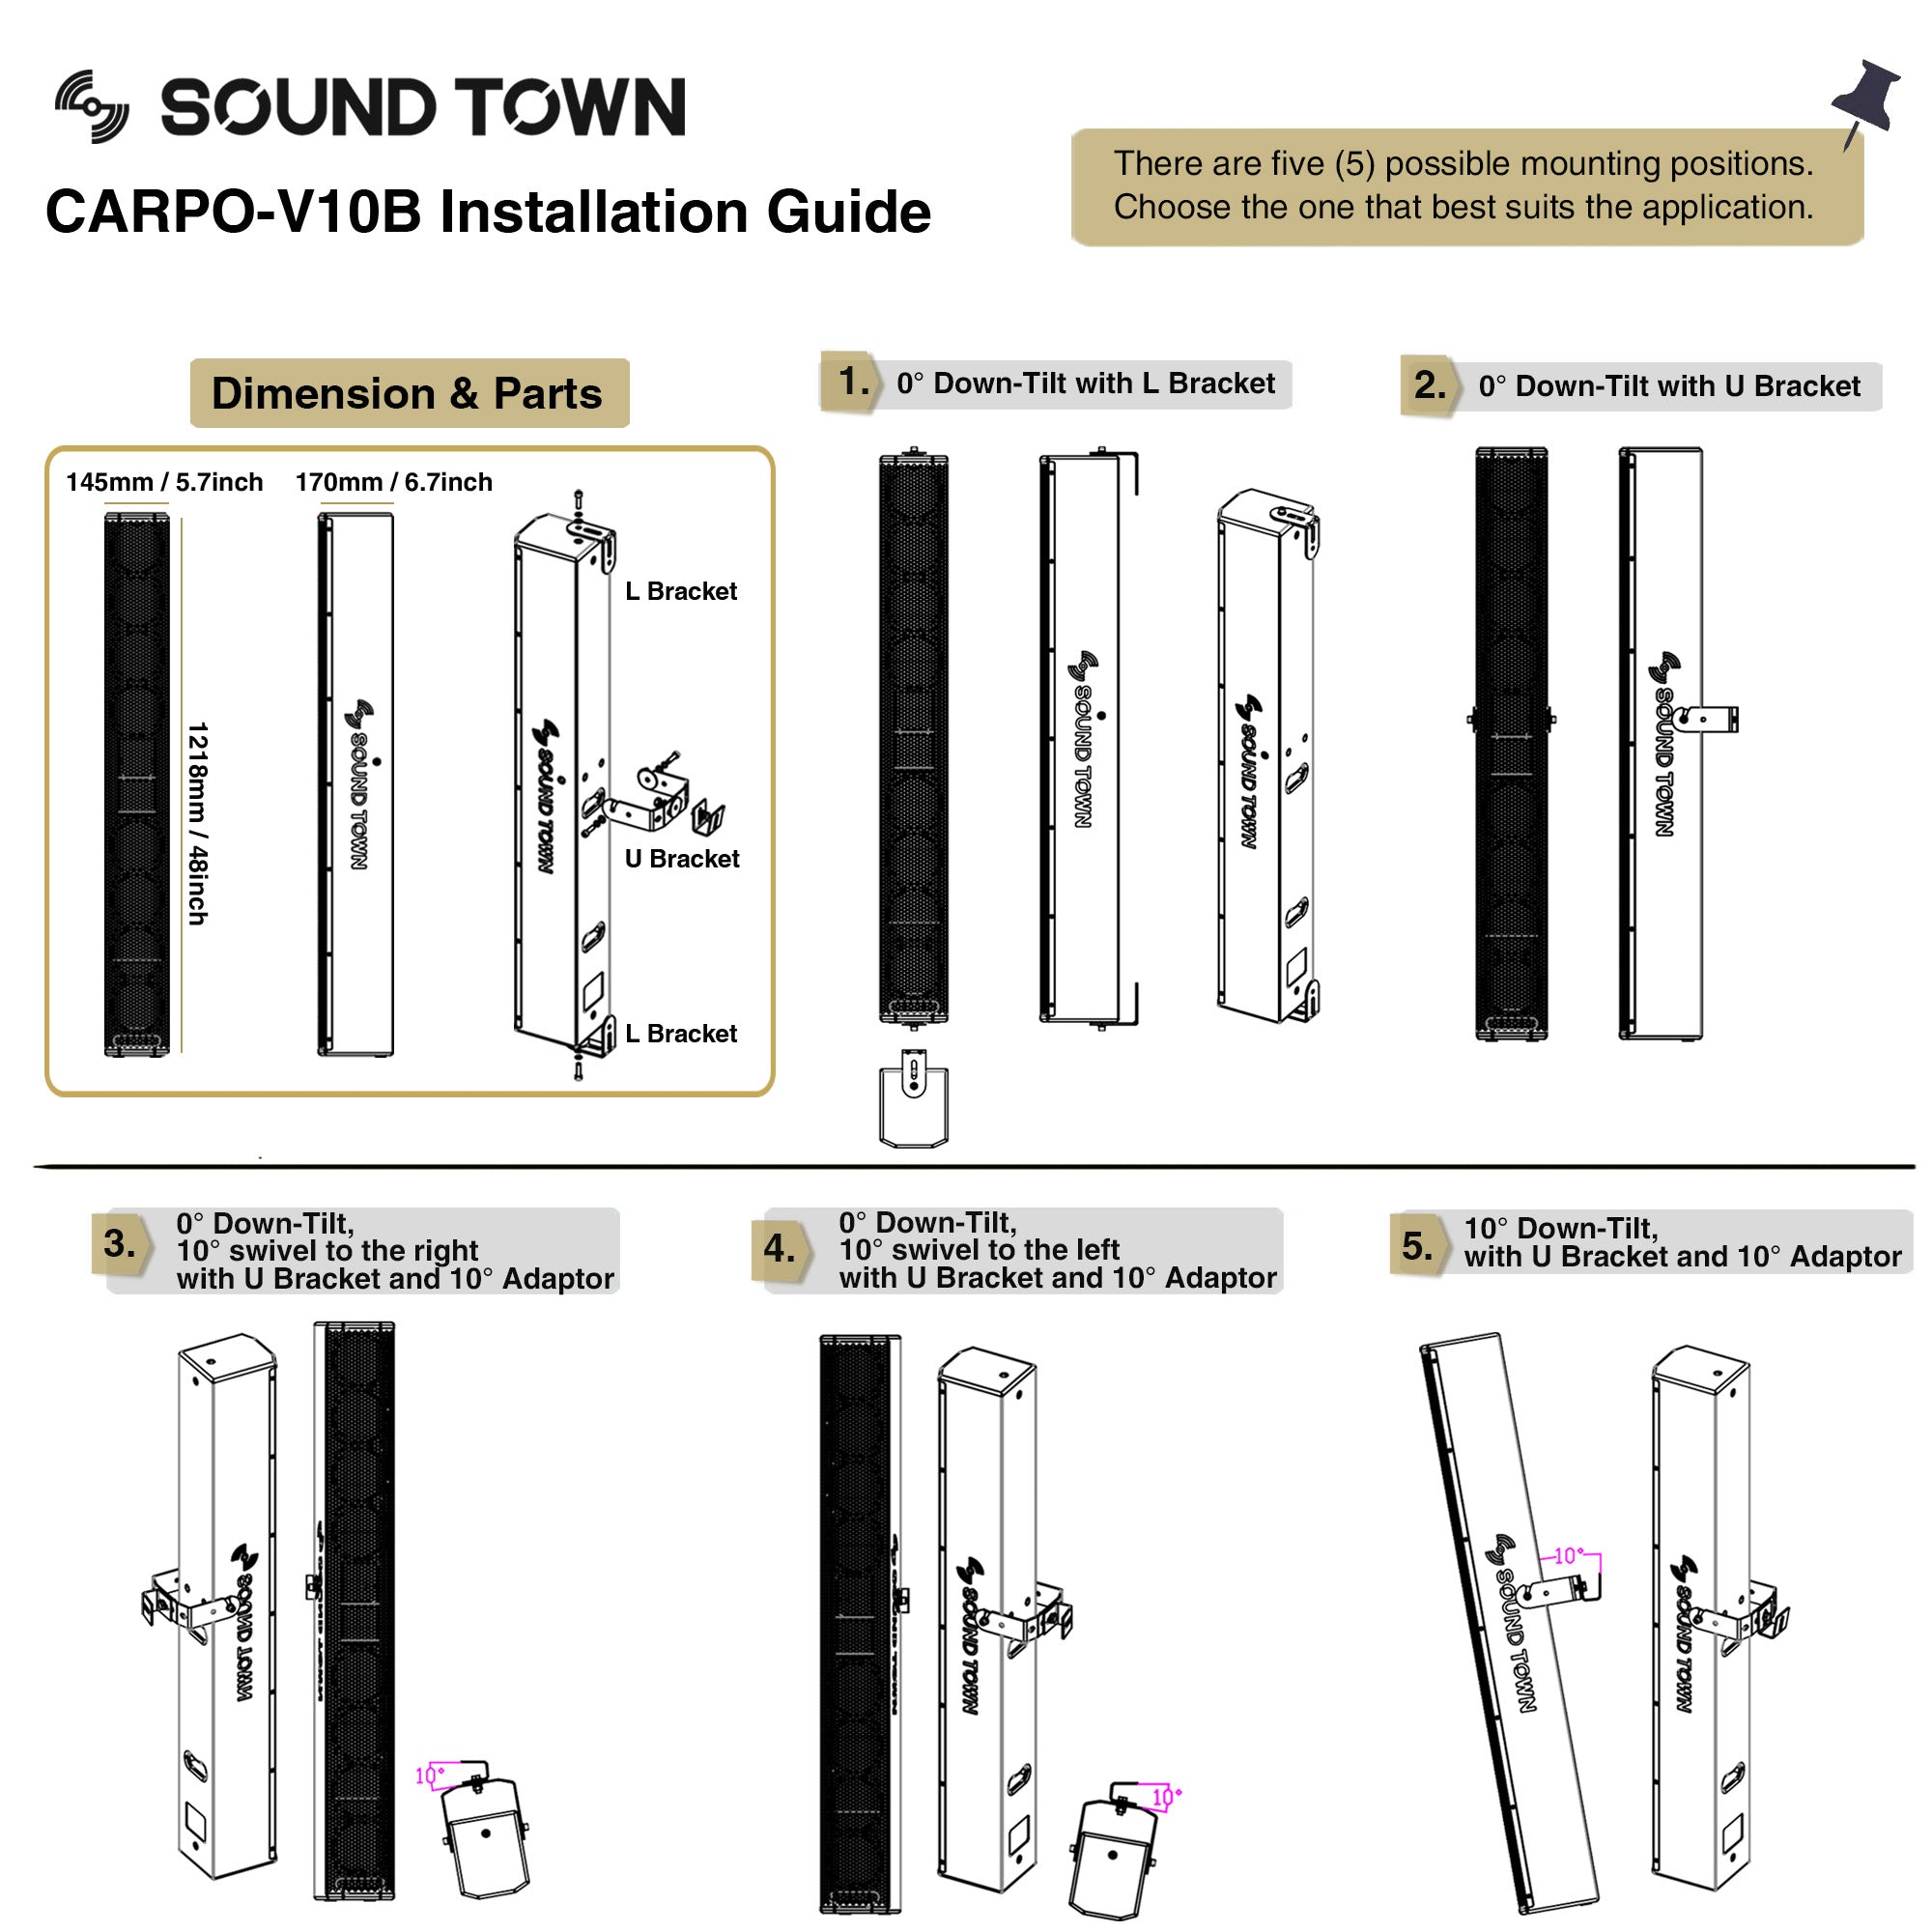 """Sound Town CARPO-V10B Passive Wall-Mount Column Mini Line Array Speaker with 8 x 5"""" Woofers, Black for Live Event, Church, Conference, Lounge - Installation Guide, How to install the L-Bracket and U-Bracket, possible mounting positions, 0° or 10° down-tilt and 10° adapter"""